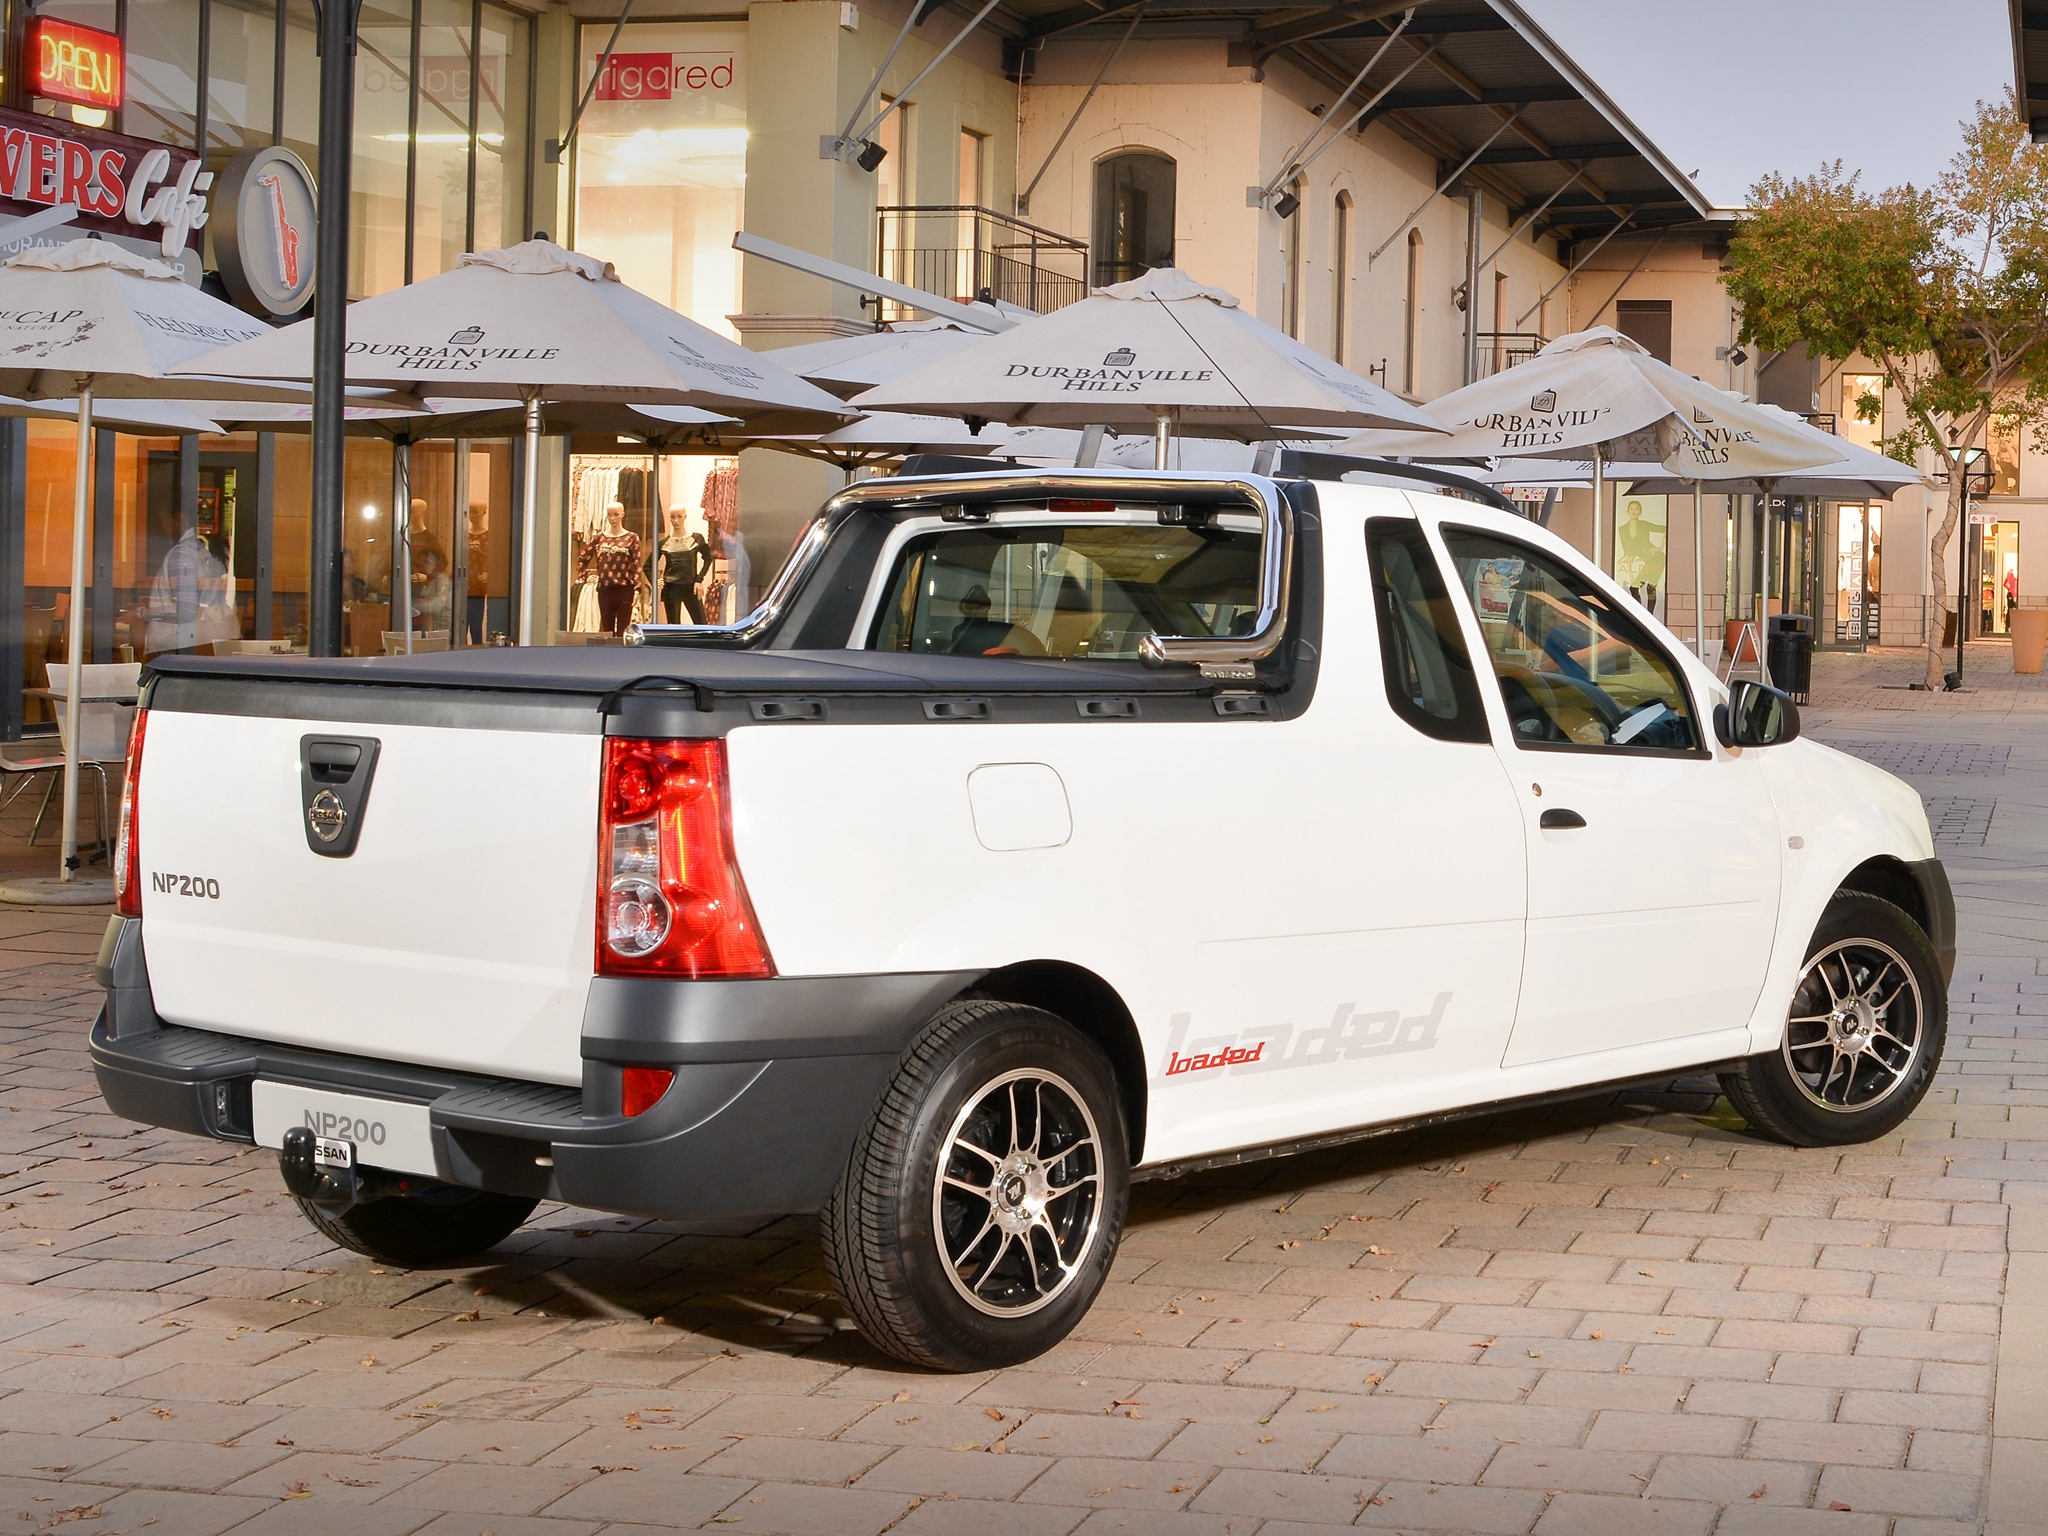 2015 Chevrolet Silverado 1500 Double Cab >> Nissan NP200 Is a Dacia Logan Pick-Up in South Africa ...